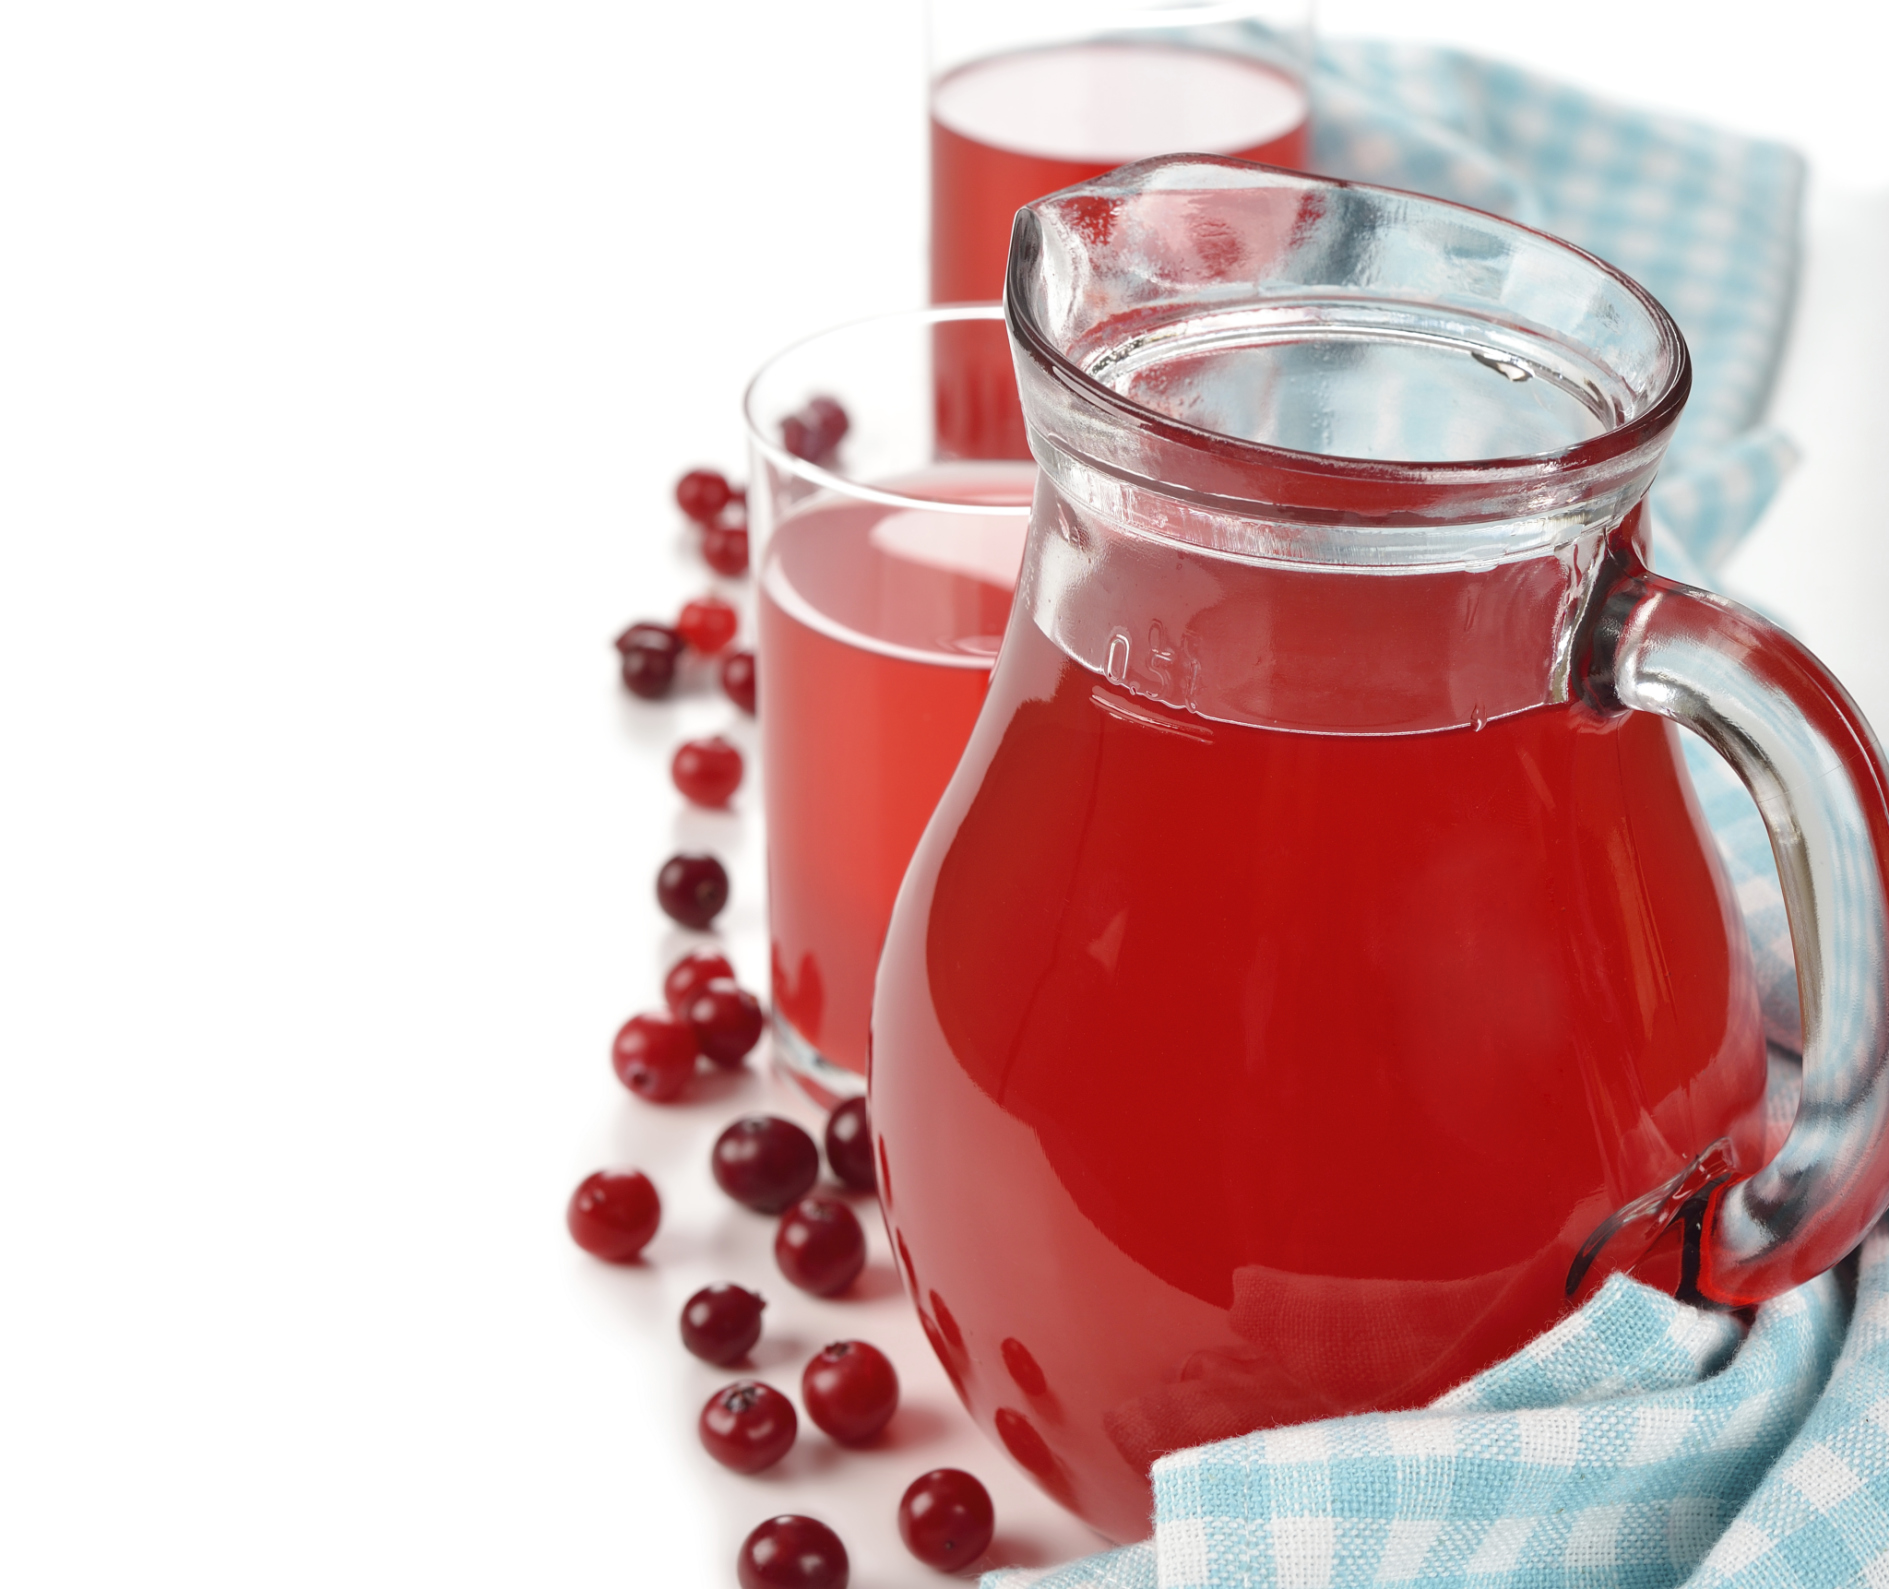 Does cranberry juice help prostate problems